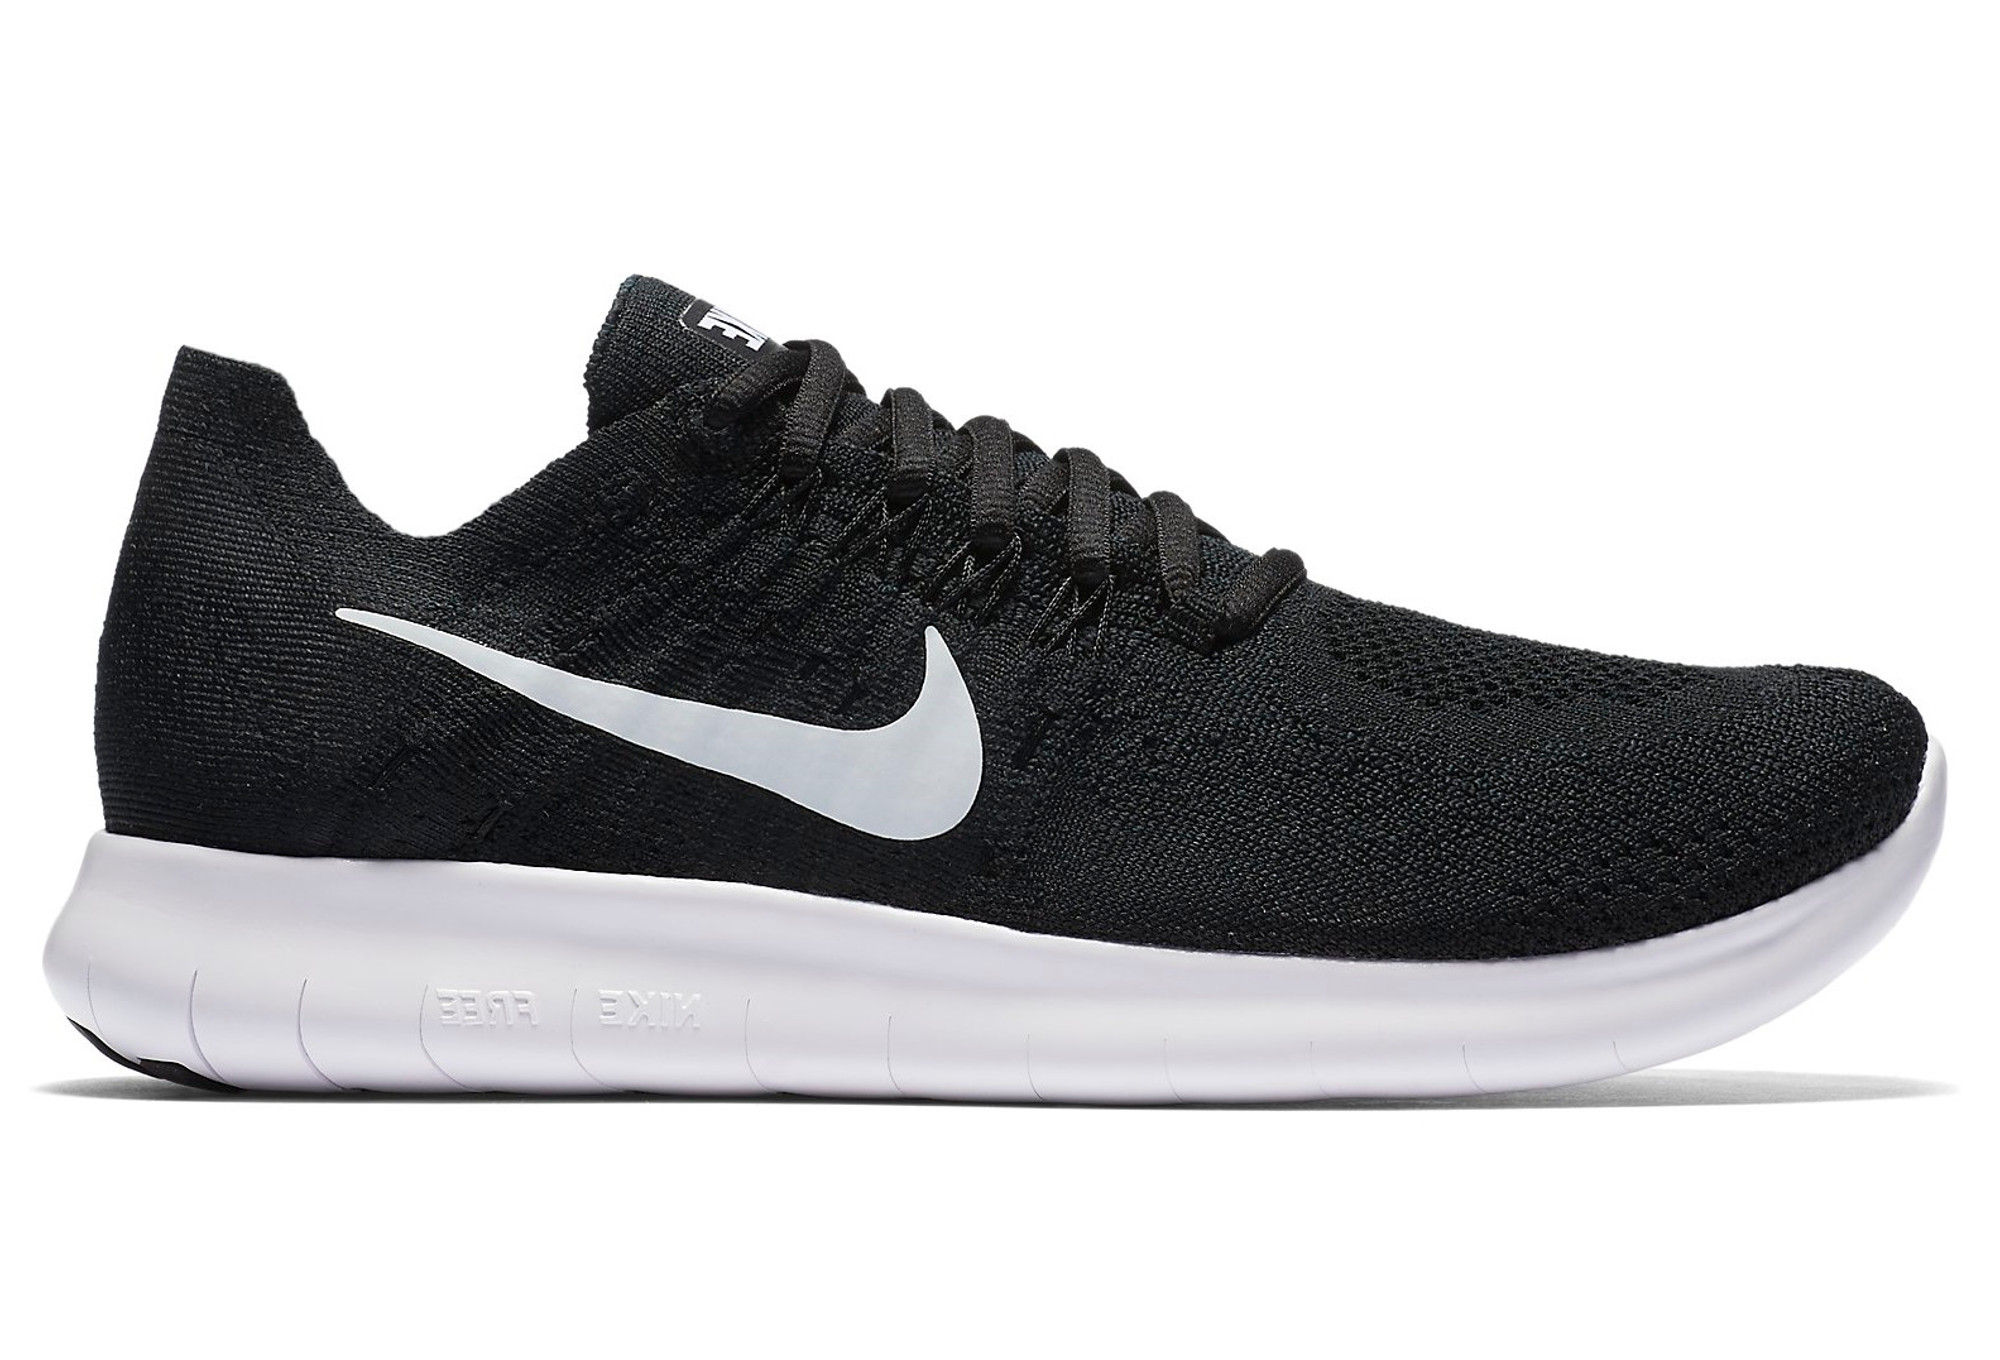 new style ad023 2db5e ... low price chaussures de running femme nike free rn flyknit 2017 blanc  noir 10743 c6f96